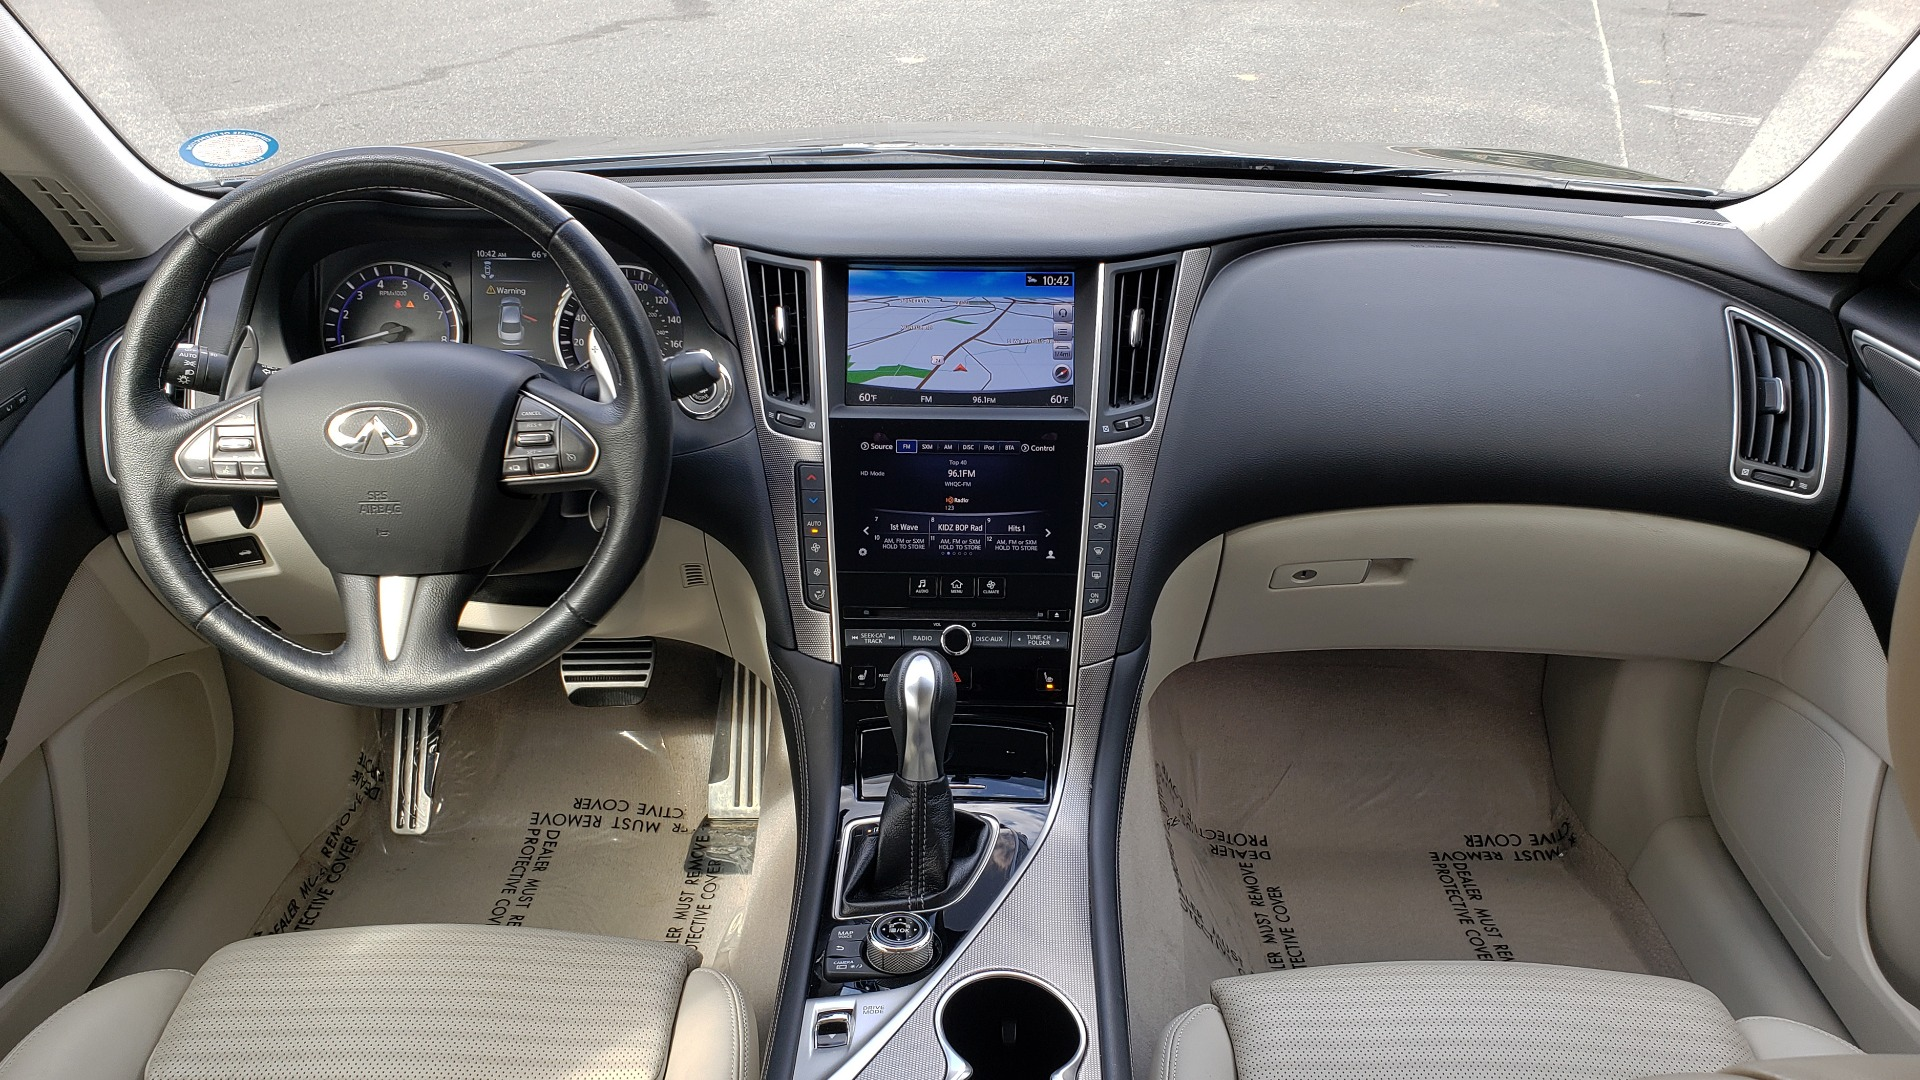 Used 2016 INFINITI Q50 3.0T RED SPORT 400 / NAV / PREM PLUS / BLIND SPOT / REARVIEW for sale $28,495 at Formula Imports in Charlotte NC 28227 78